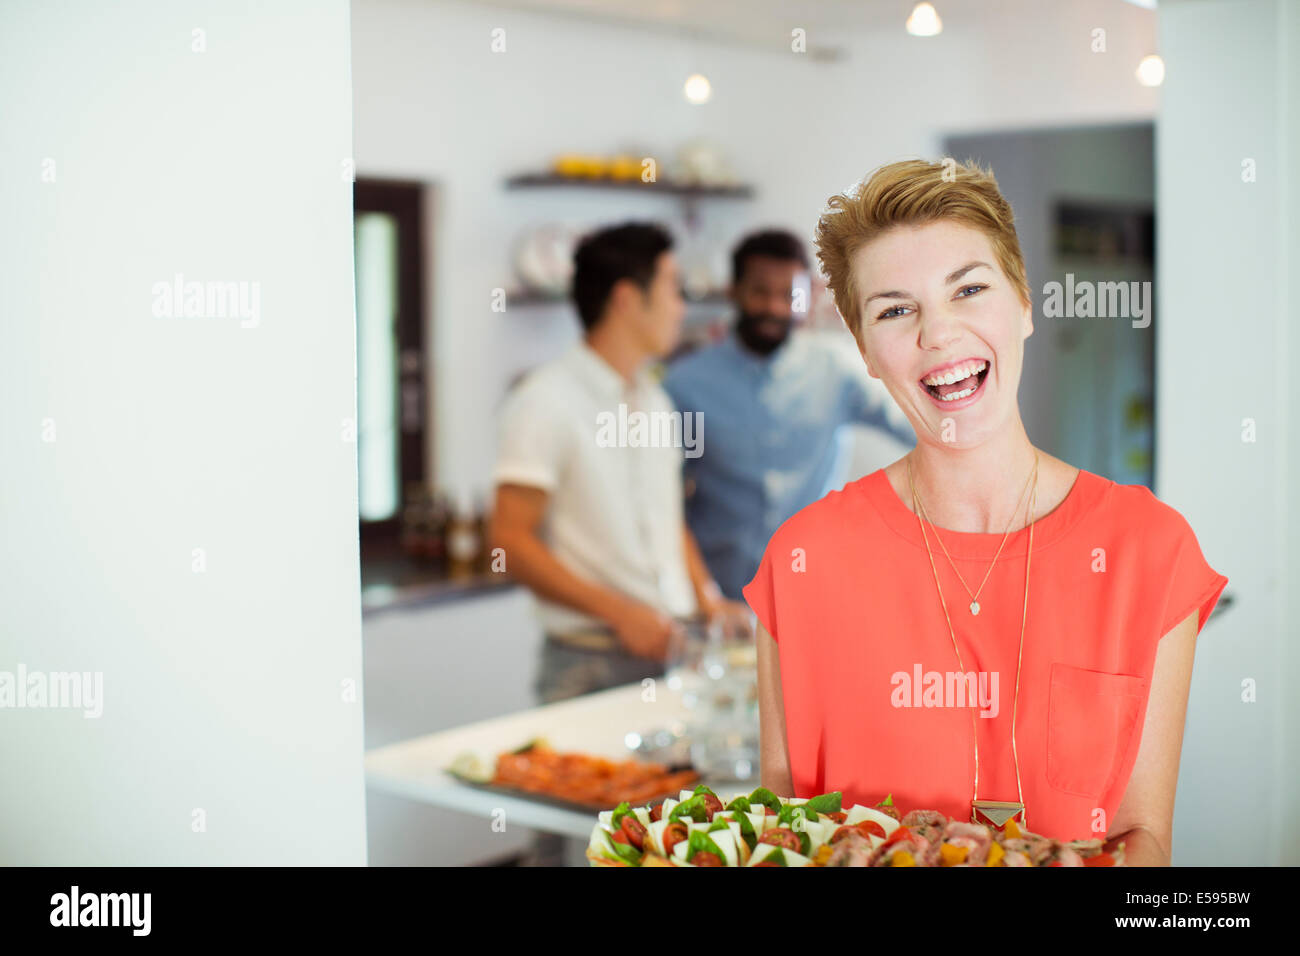 Woman carrying tray of food at party Photo Stock